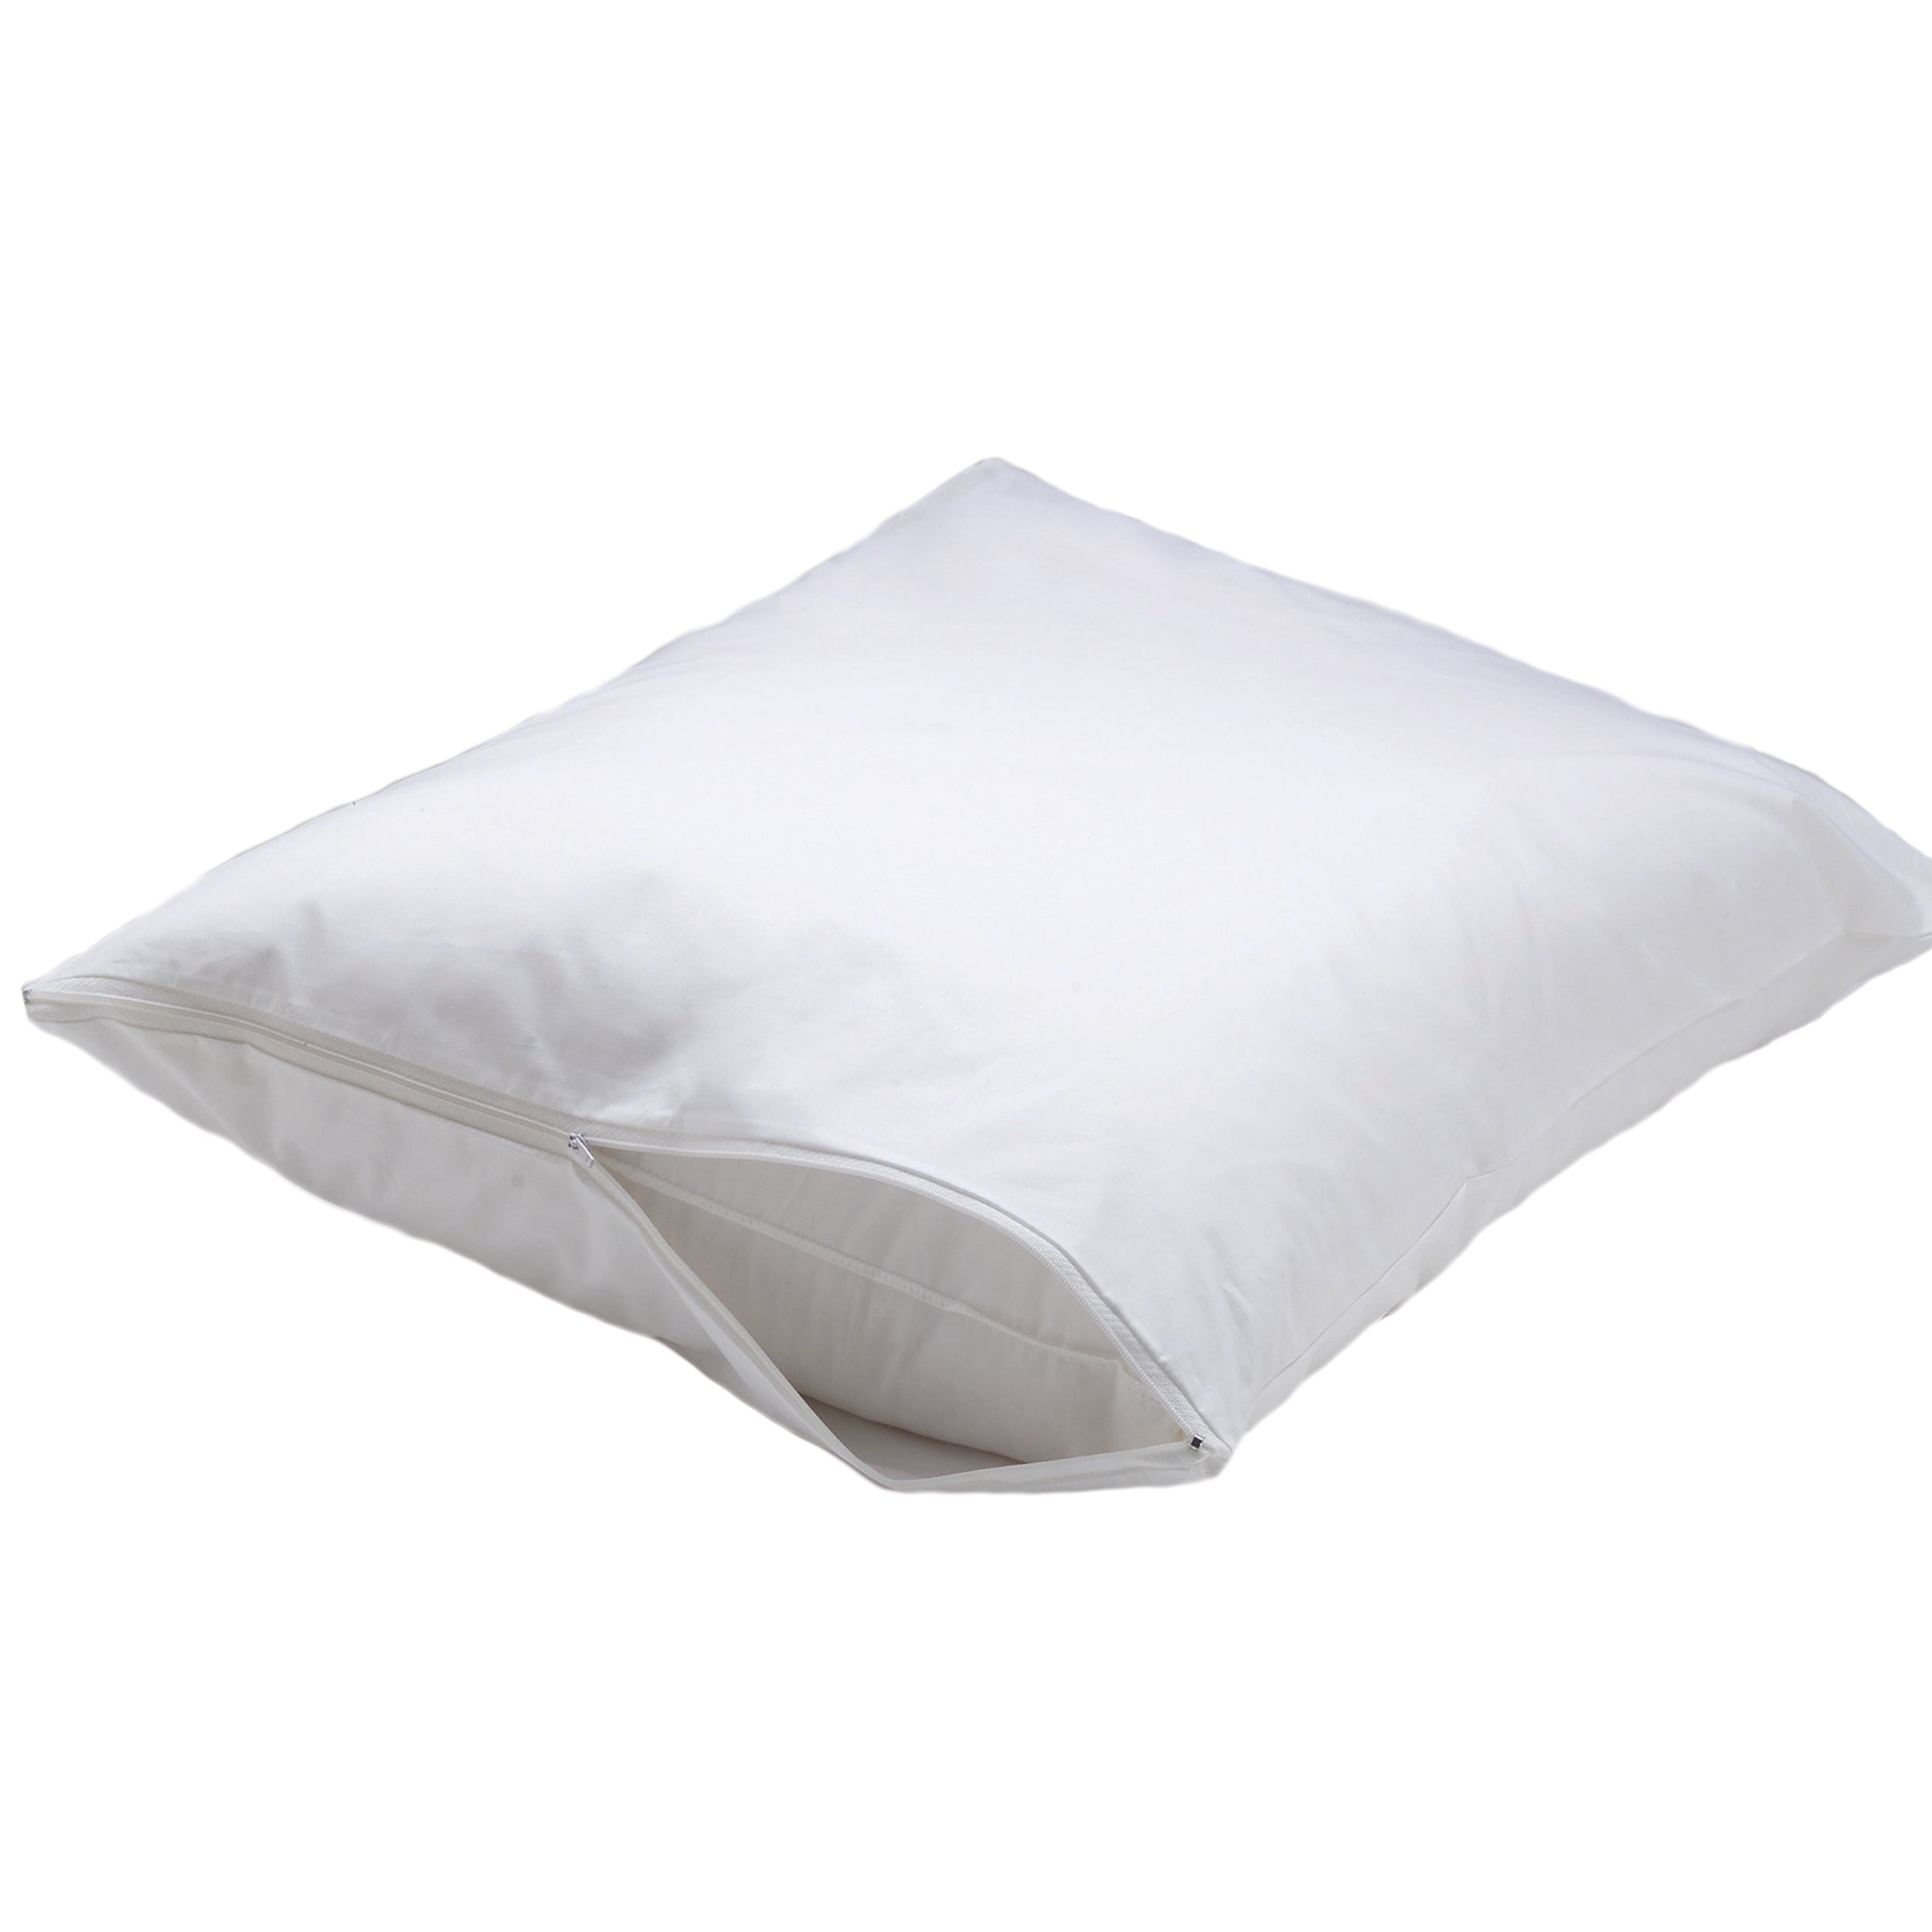 bug cover home mattress cloud mattresses fresh dryline lovely slumber bed covers protector inspirational depot of